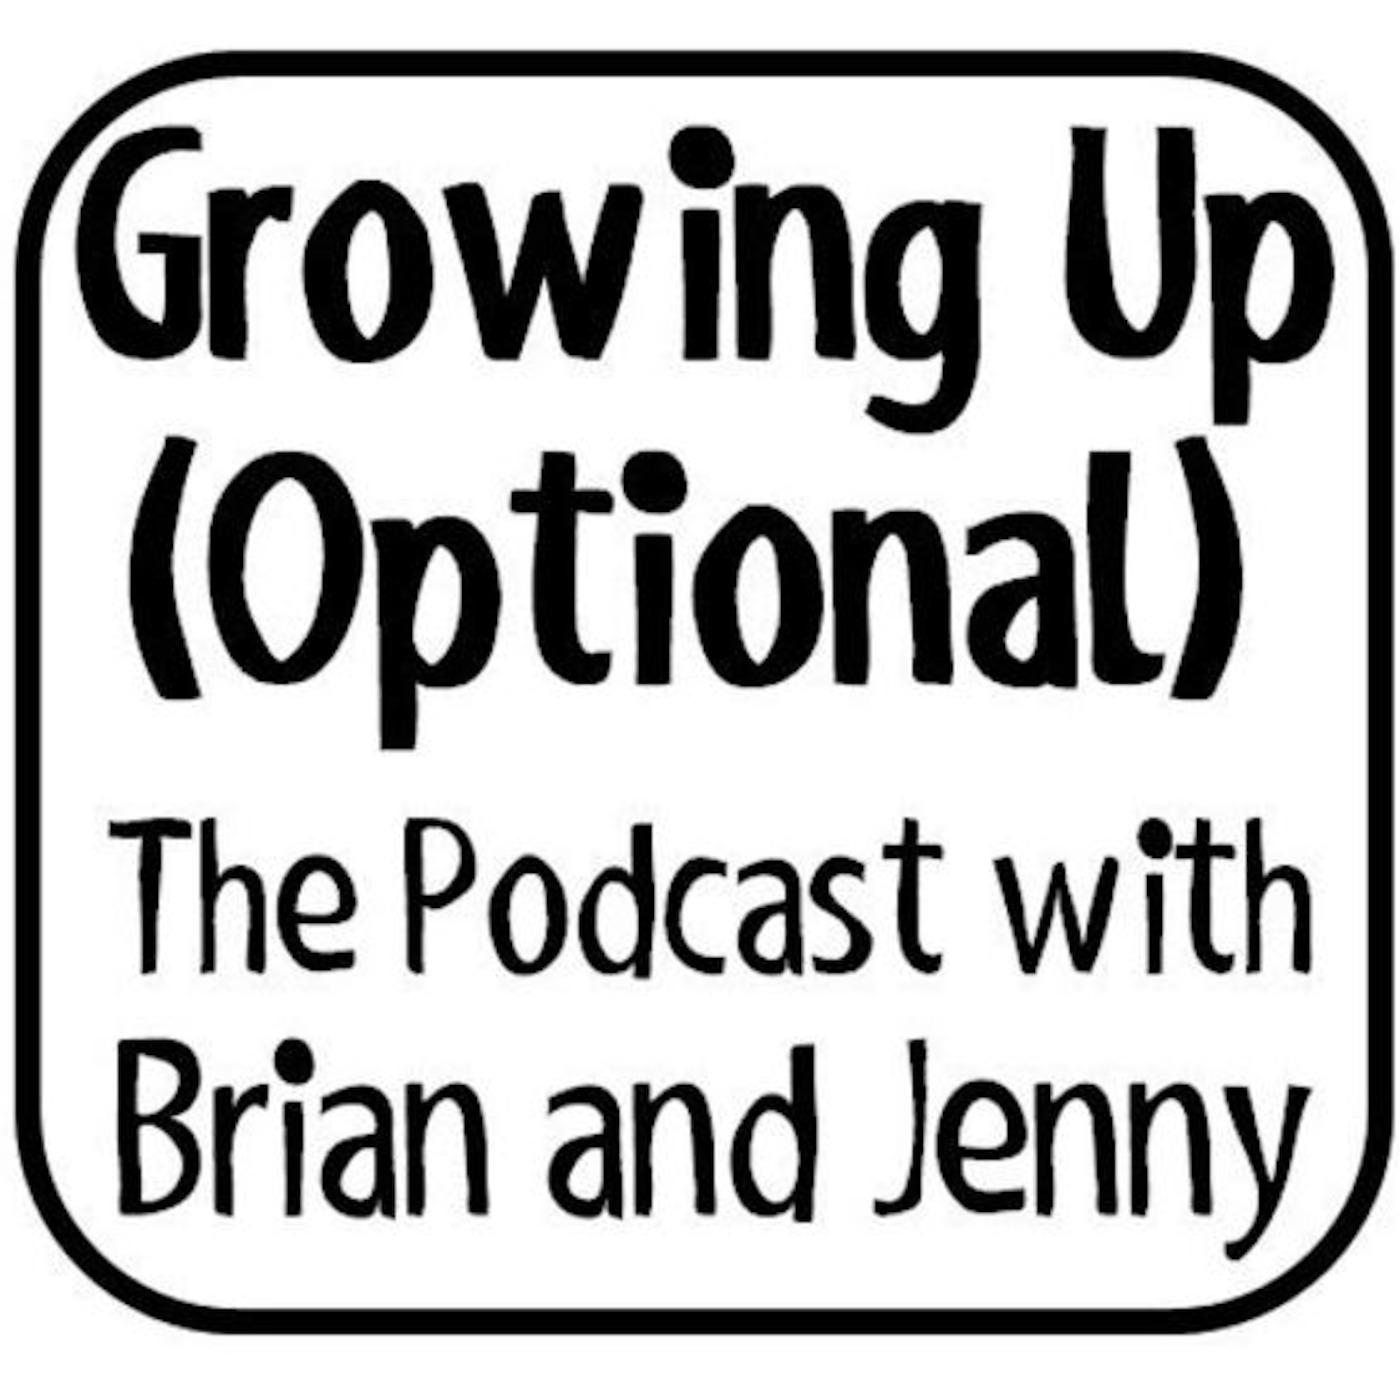 Growing Up (Optional) The Podcast